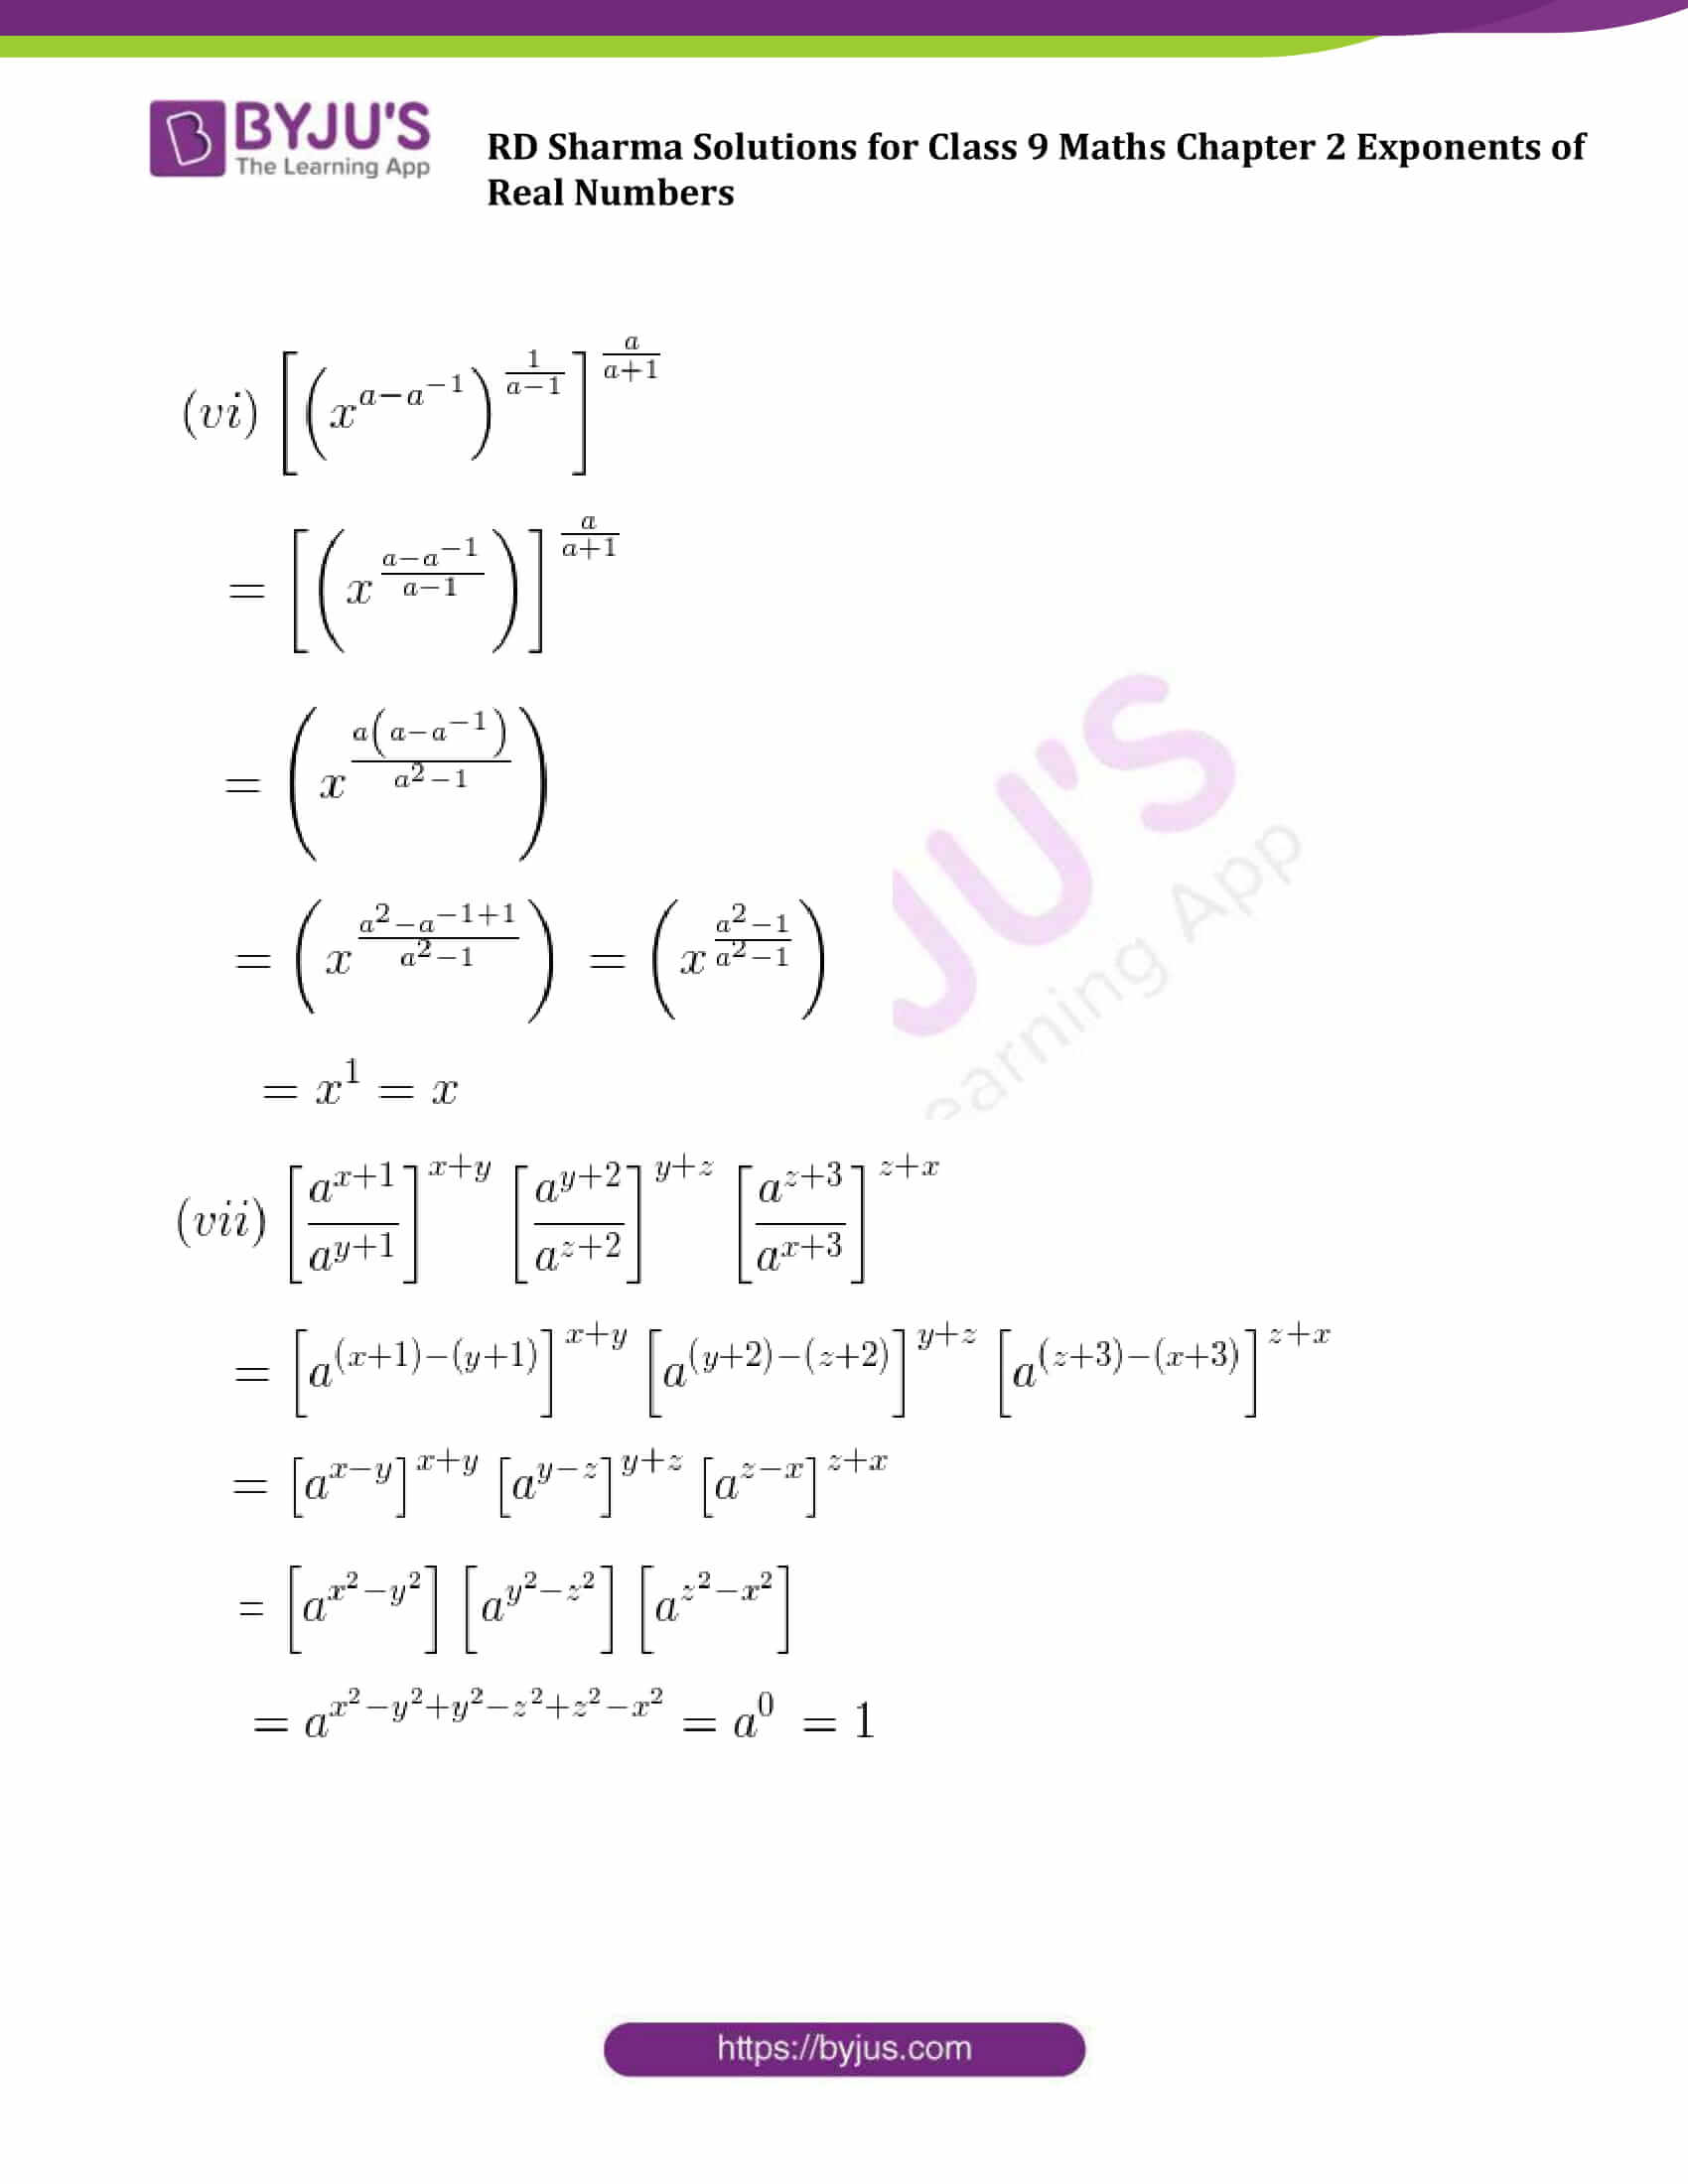 RD Sharma Solution class 9 Maths Chapter 2 Exponents of Real Numbers 24